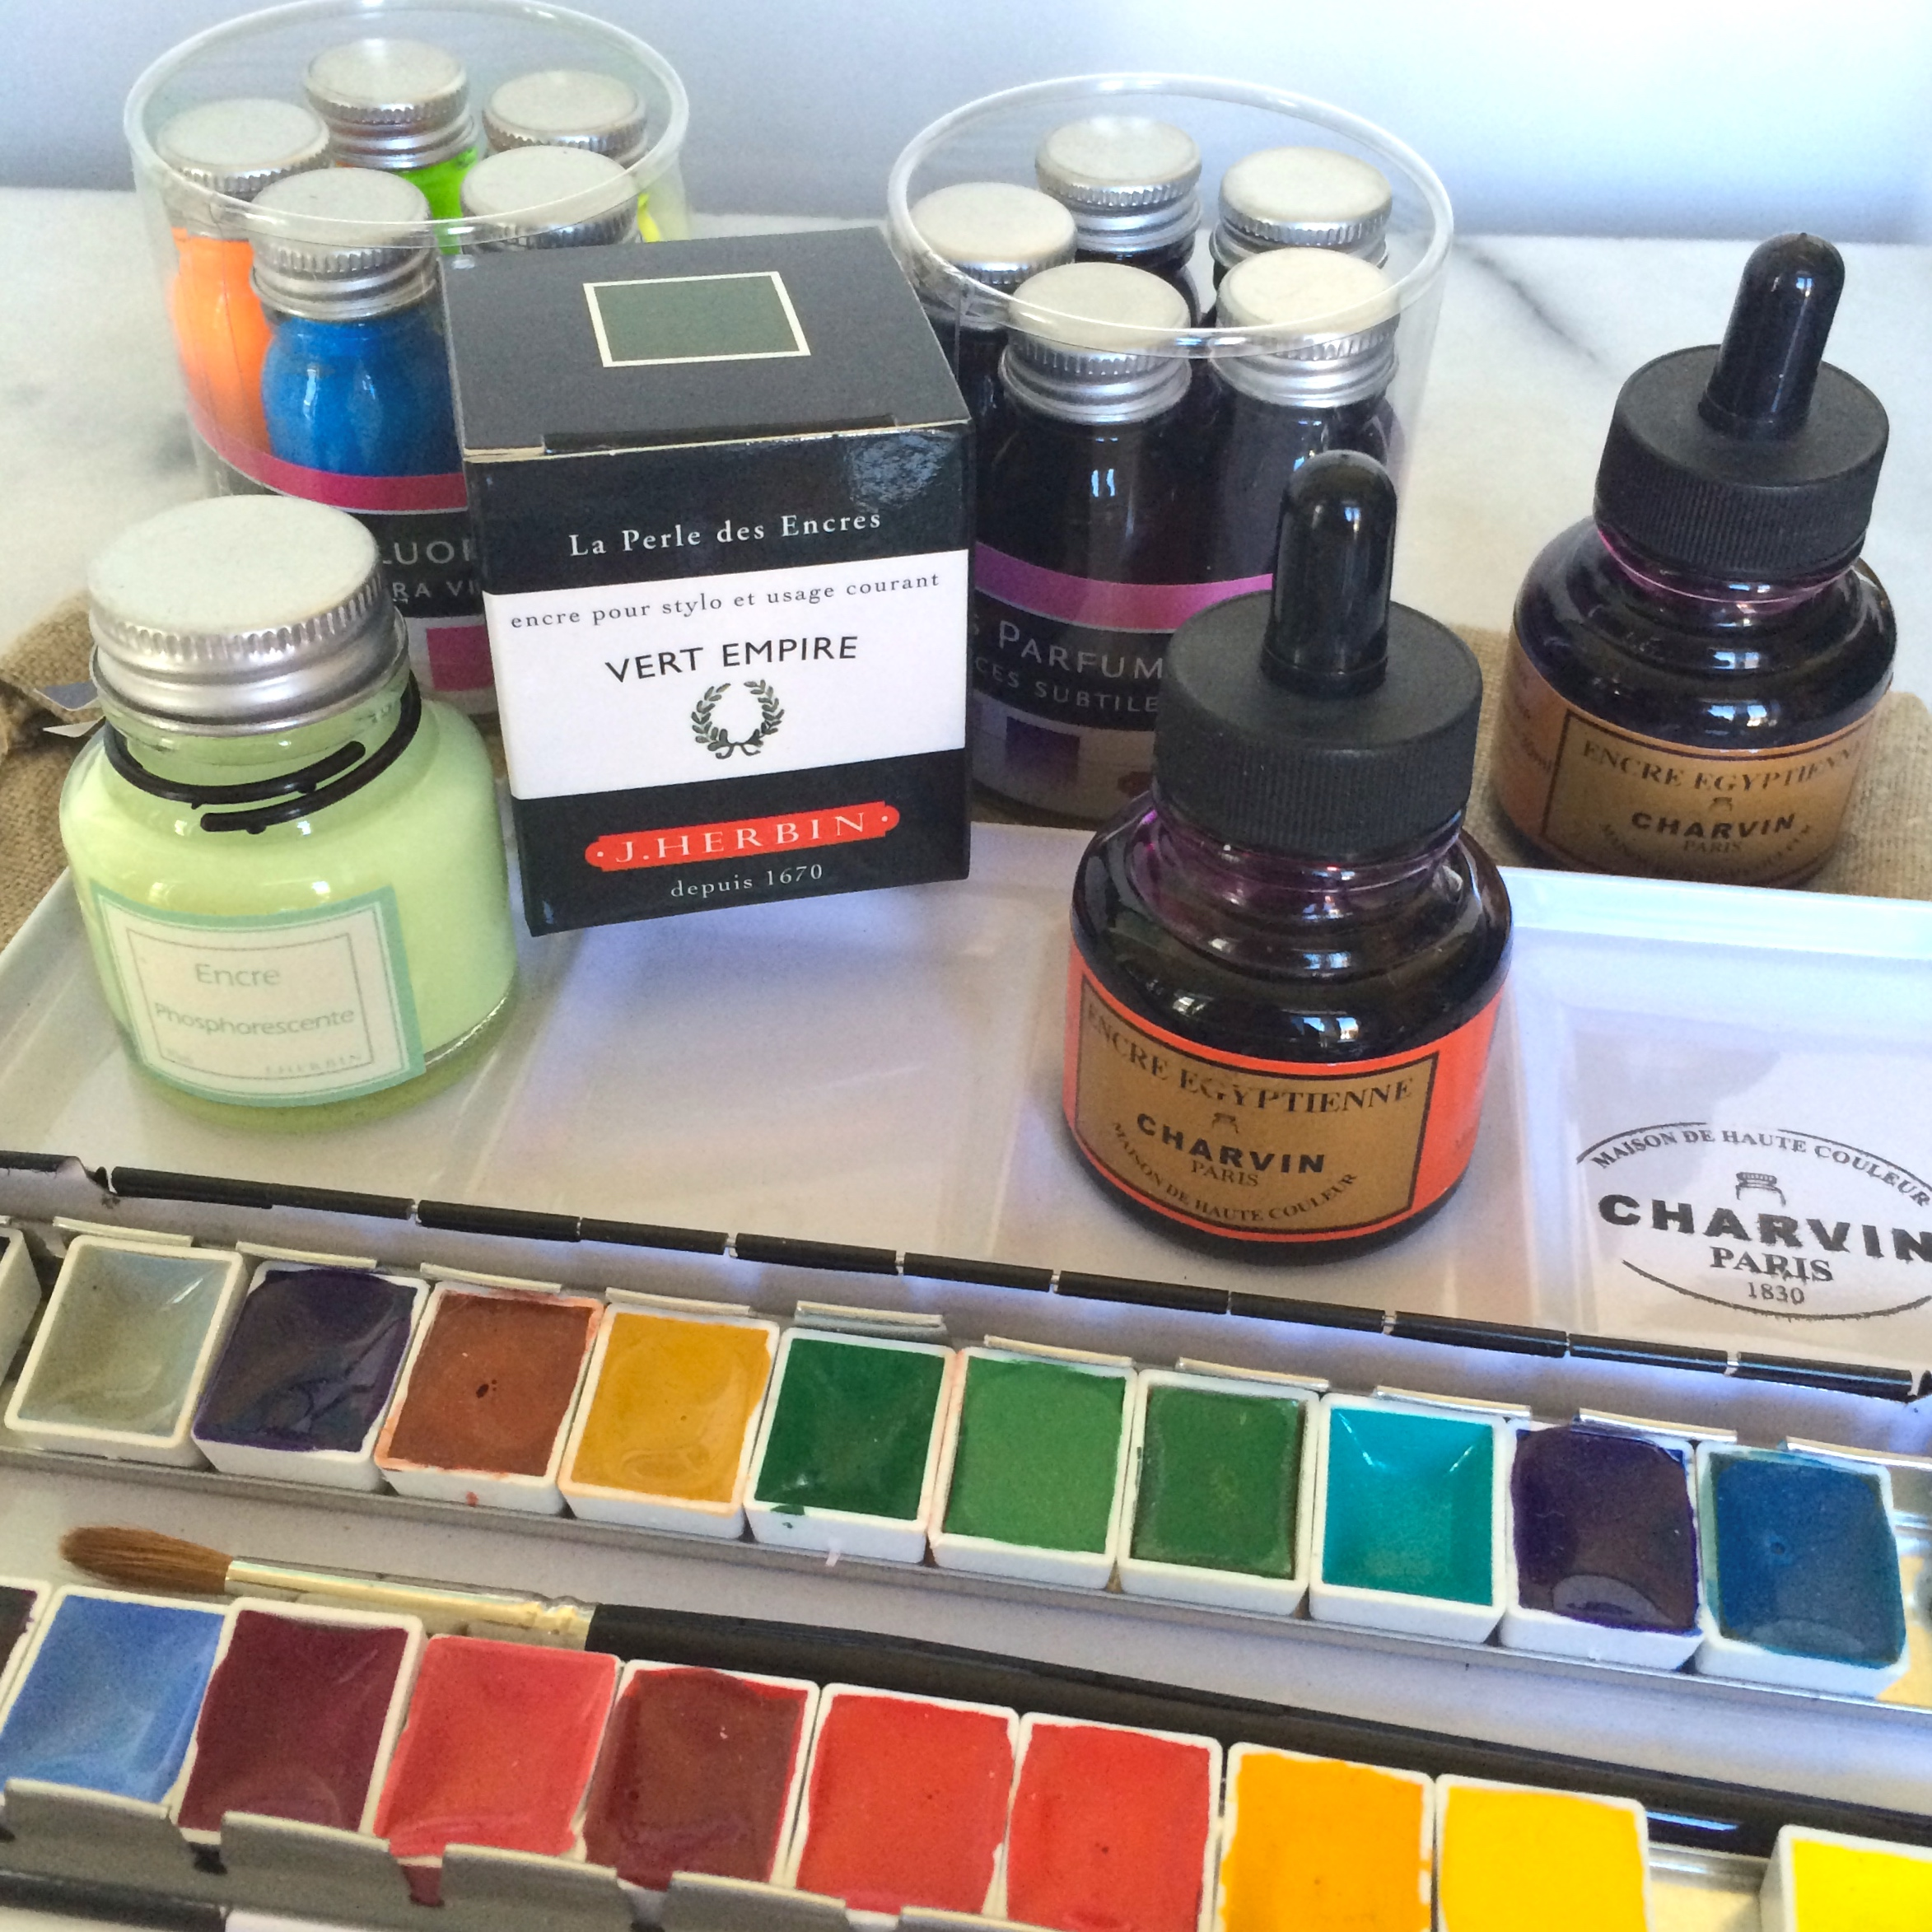 Ink! Watercolors! Yes, I bought a lot. Now I have no excuse not to get straight back to work. Scented! Flourescent! and the pièce de la résistance: Glow-in-the-dark ink!!